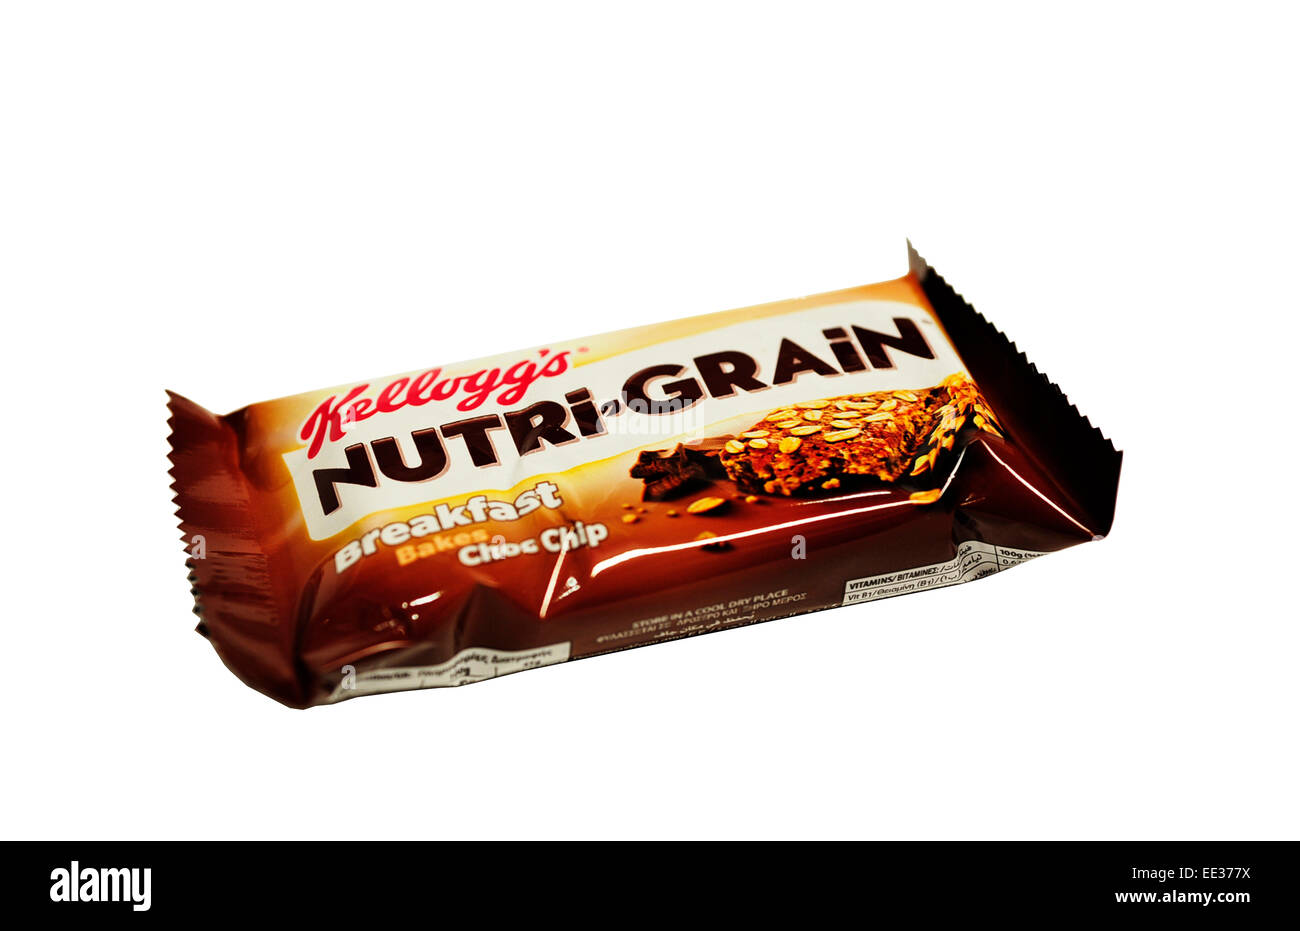 Close-up of Kellogg's Nutri-Grain Breakfast Bakes Choc Chip - Stock Image